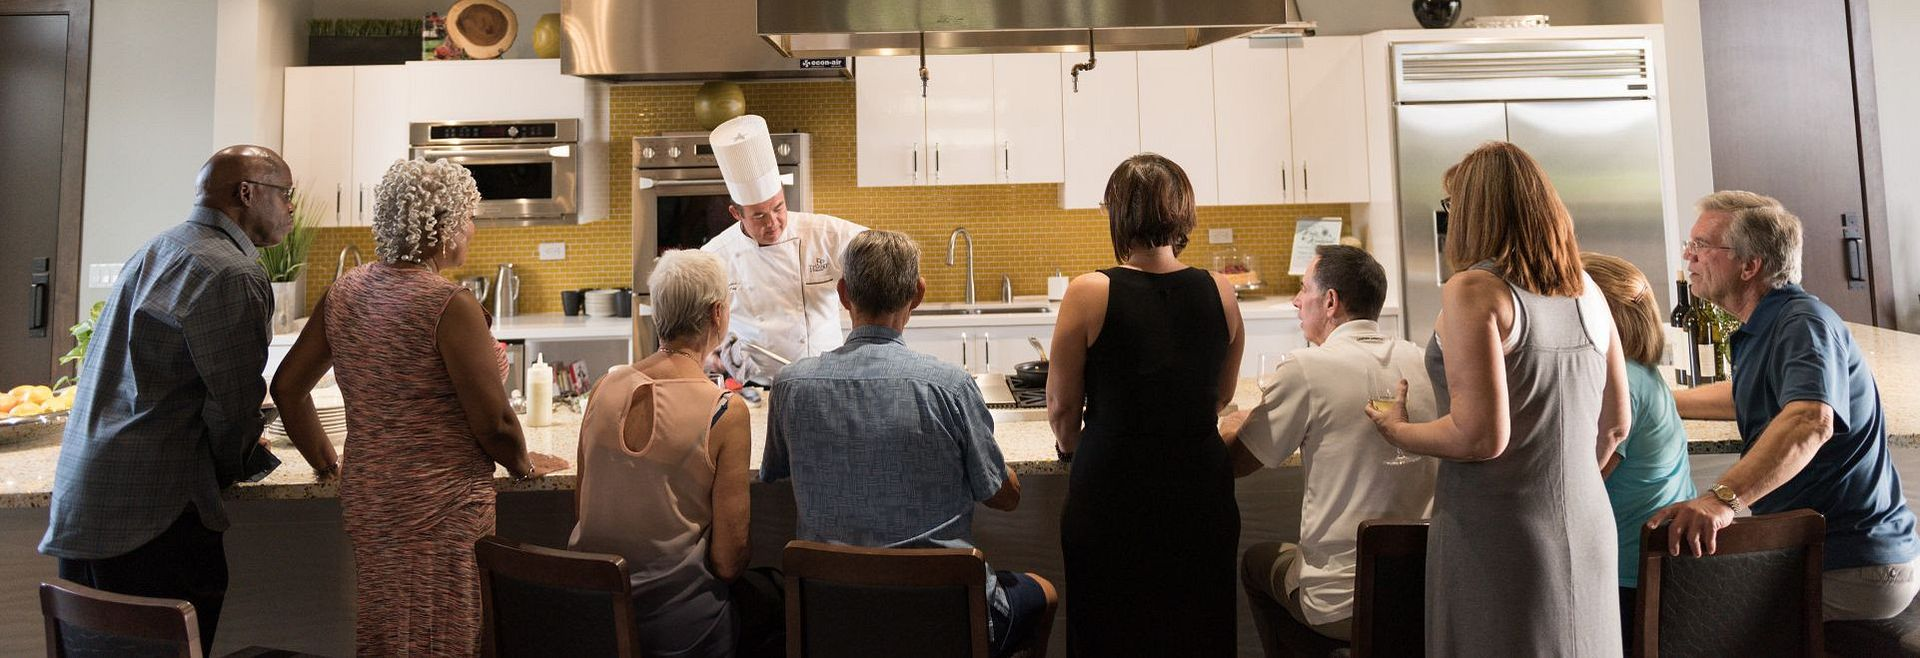 Community Kitchen at Trilogy at Vistancia